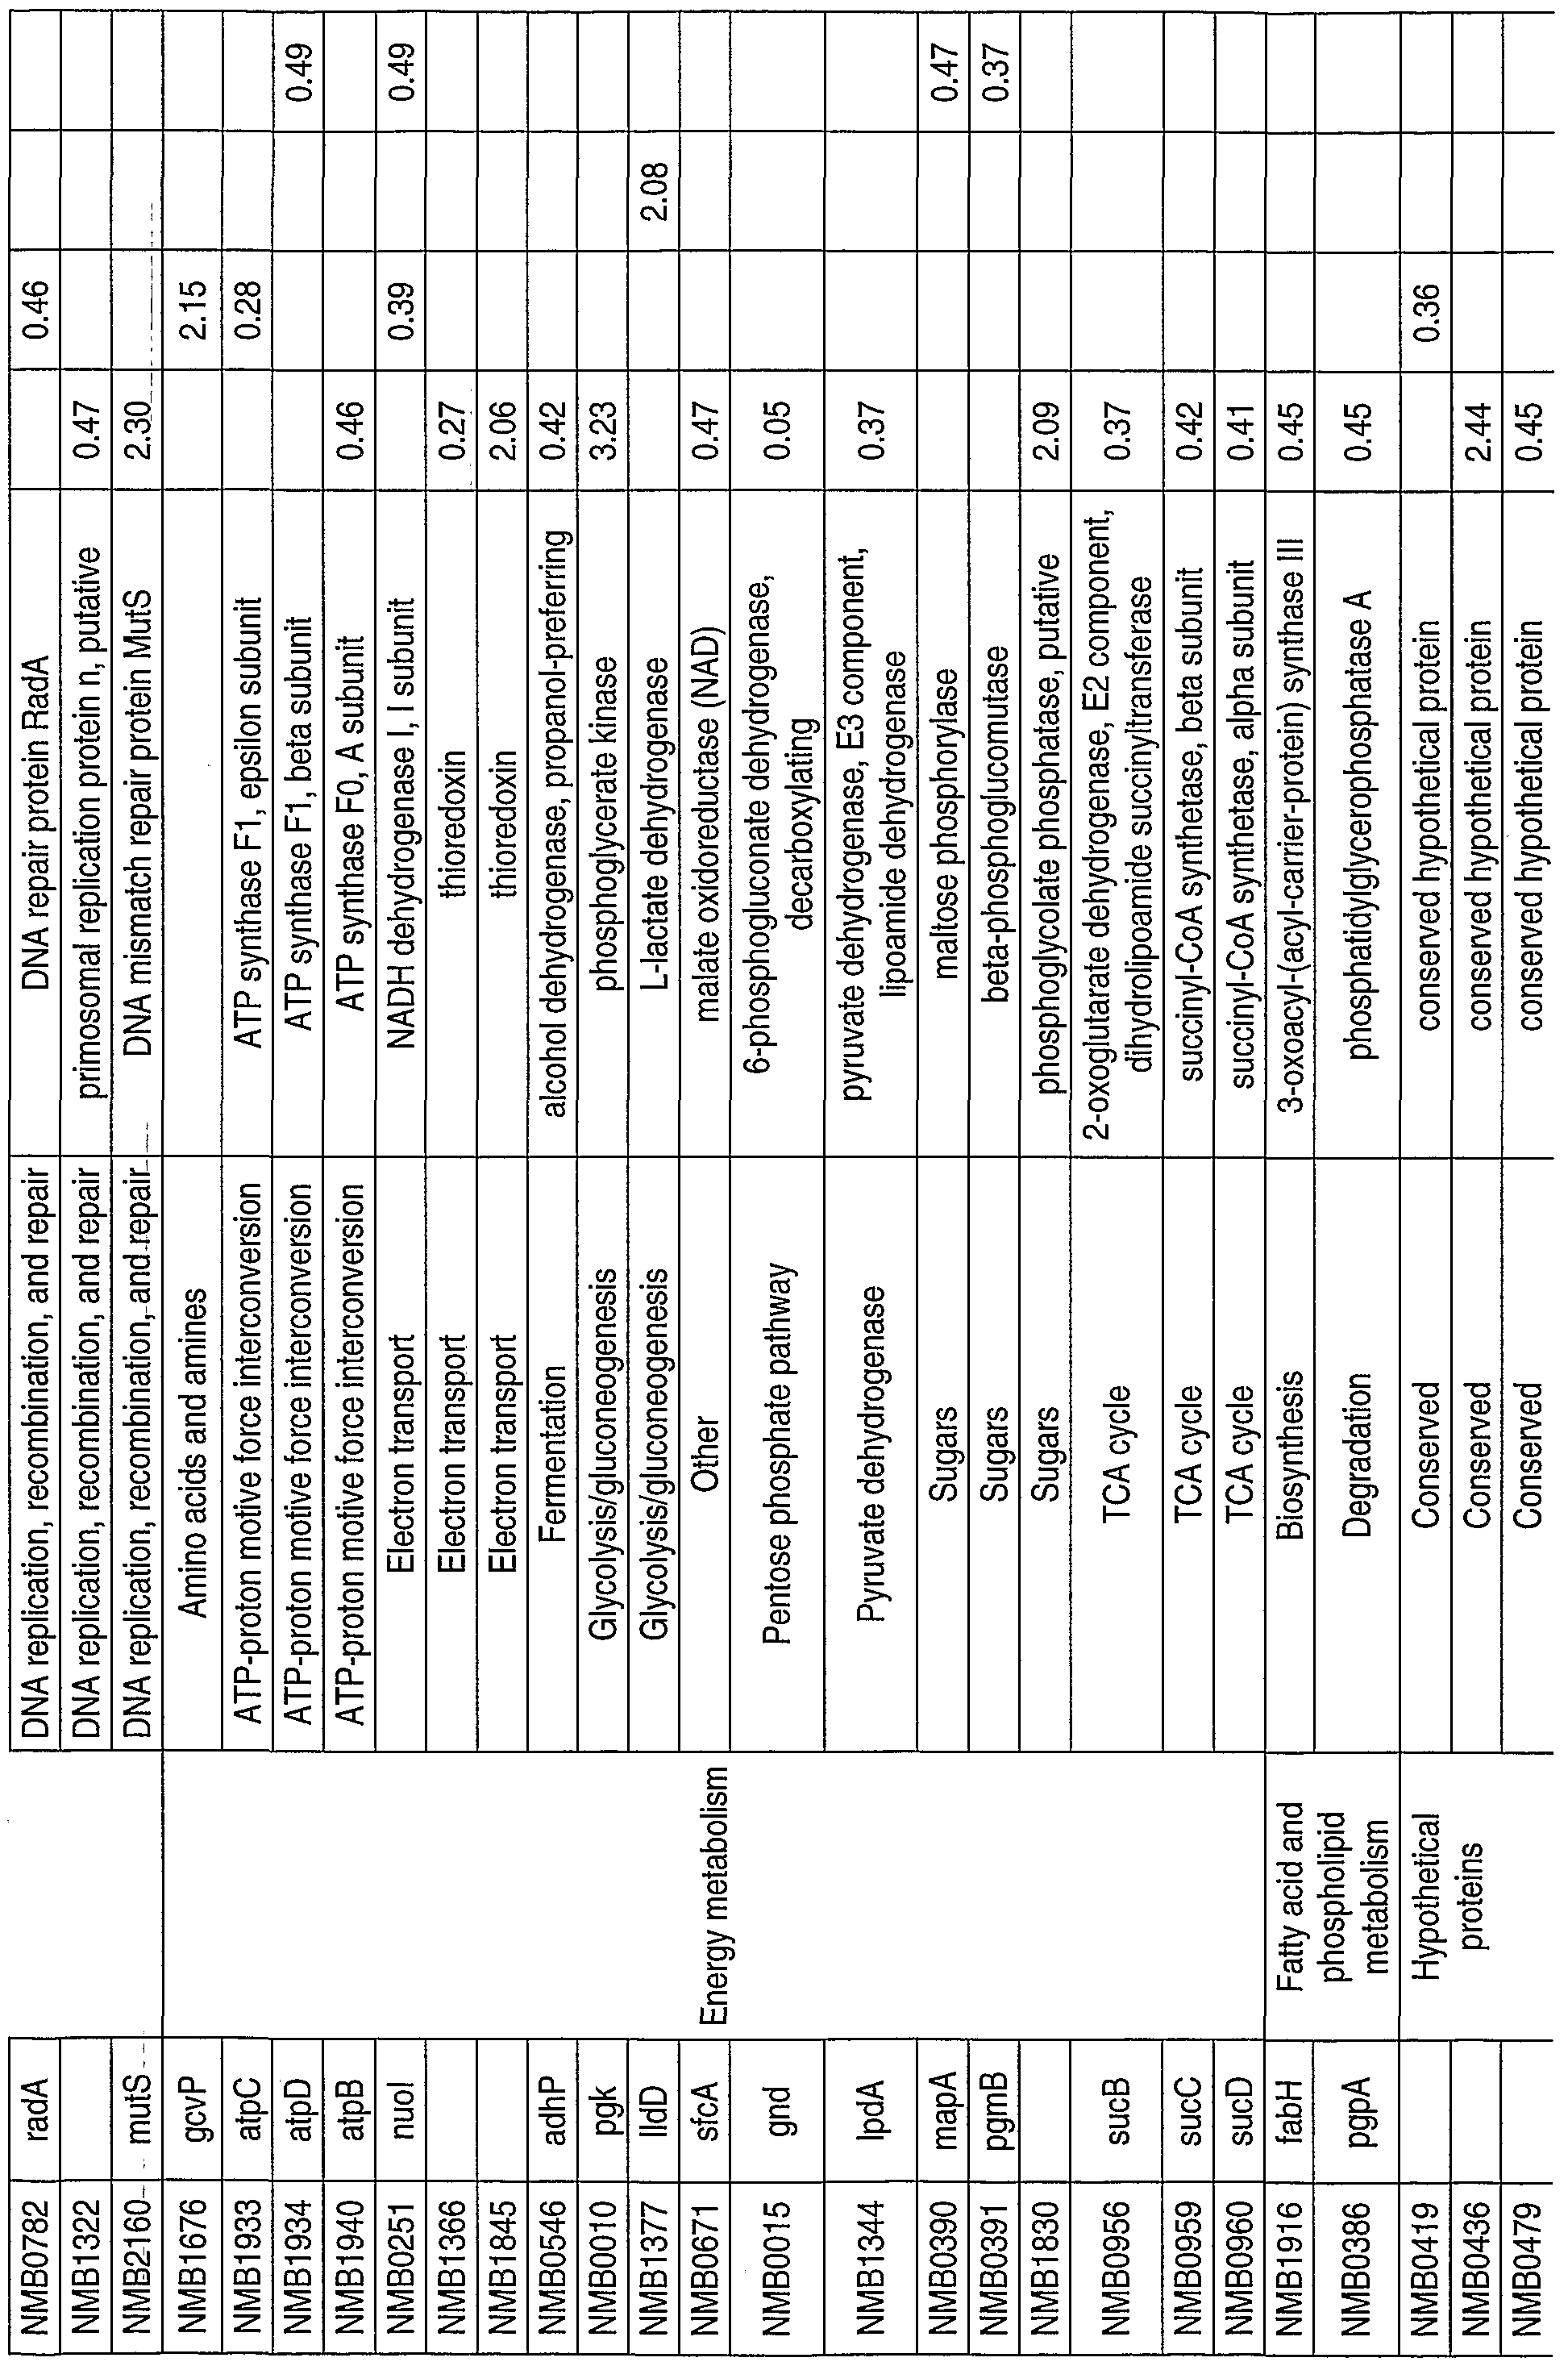 WO2002102843A2 - Gene expression during meningococcus